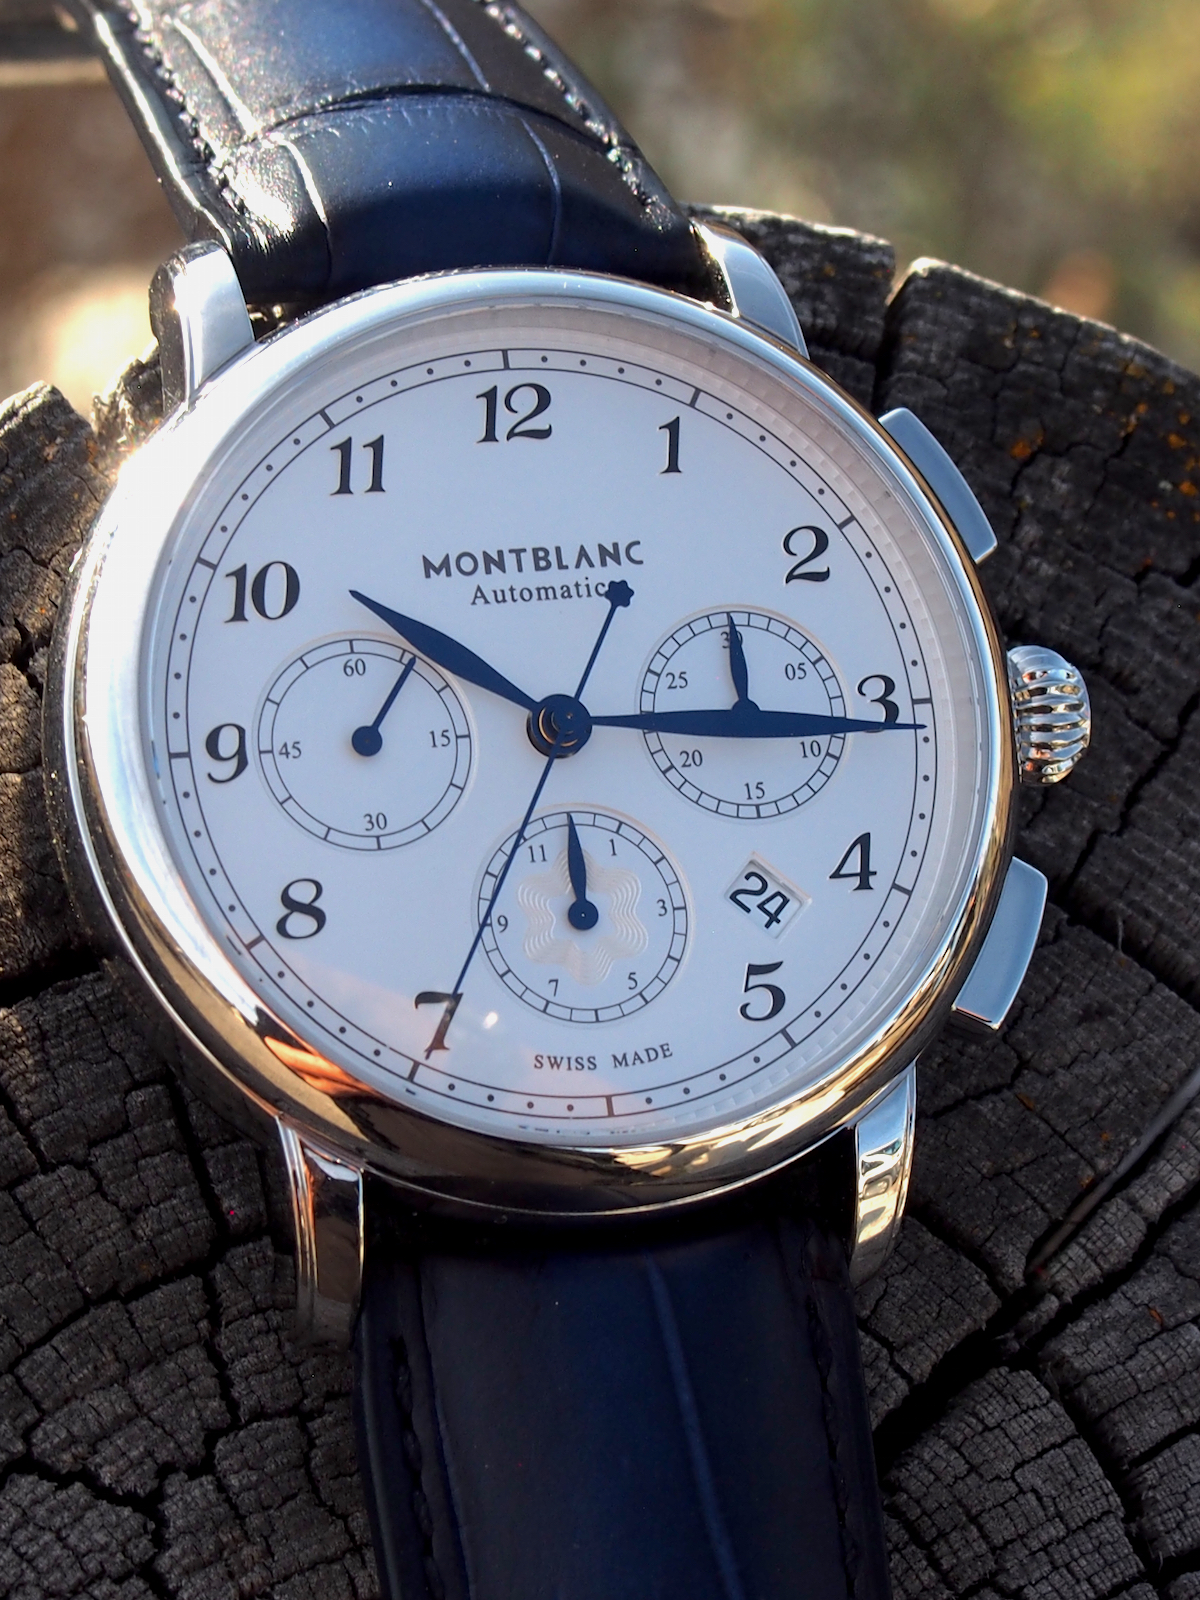 Pre-SIHH 2018: Montblanc Star Legacy Automatic Chronograph is a vision in blue, white and silver beauty for approximately $3,990.